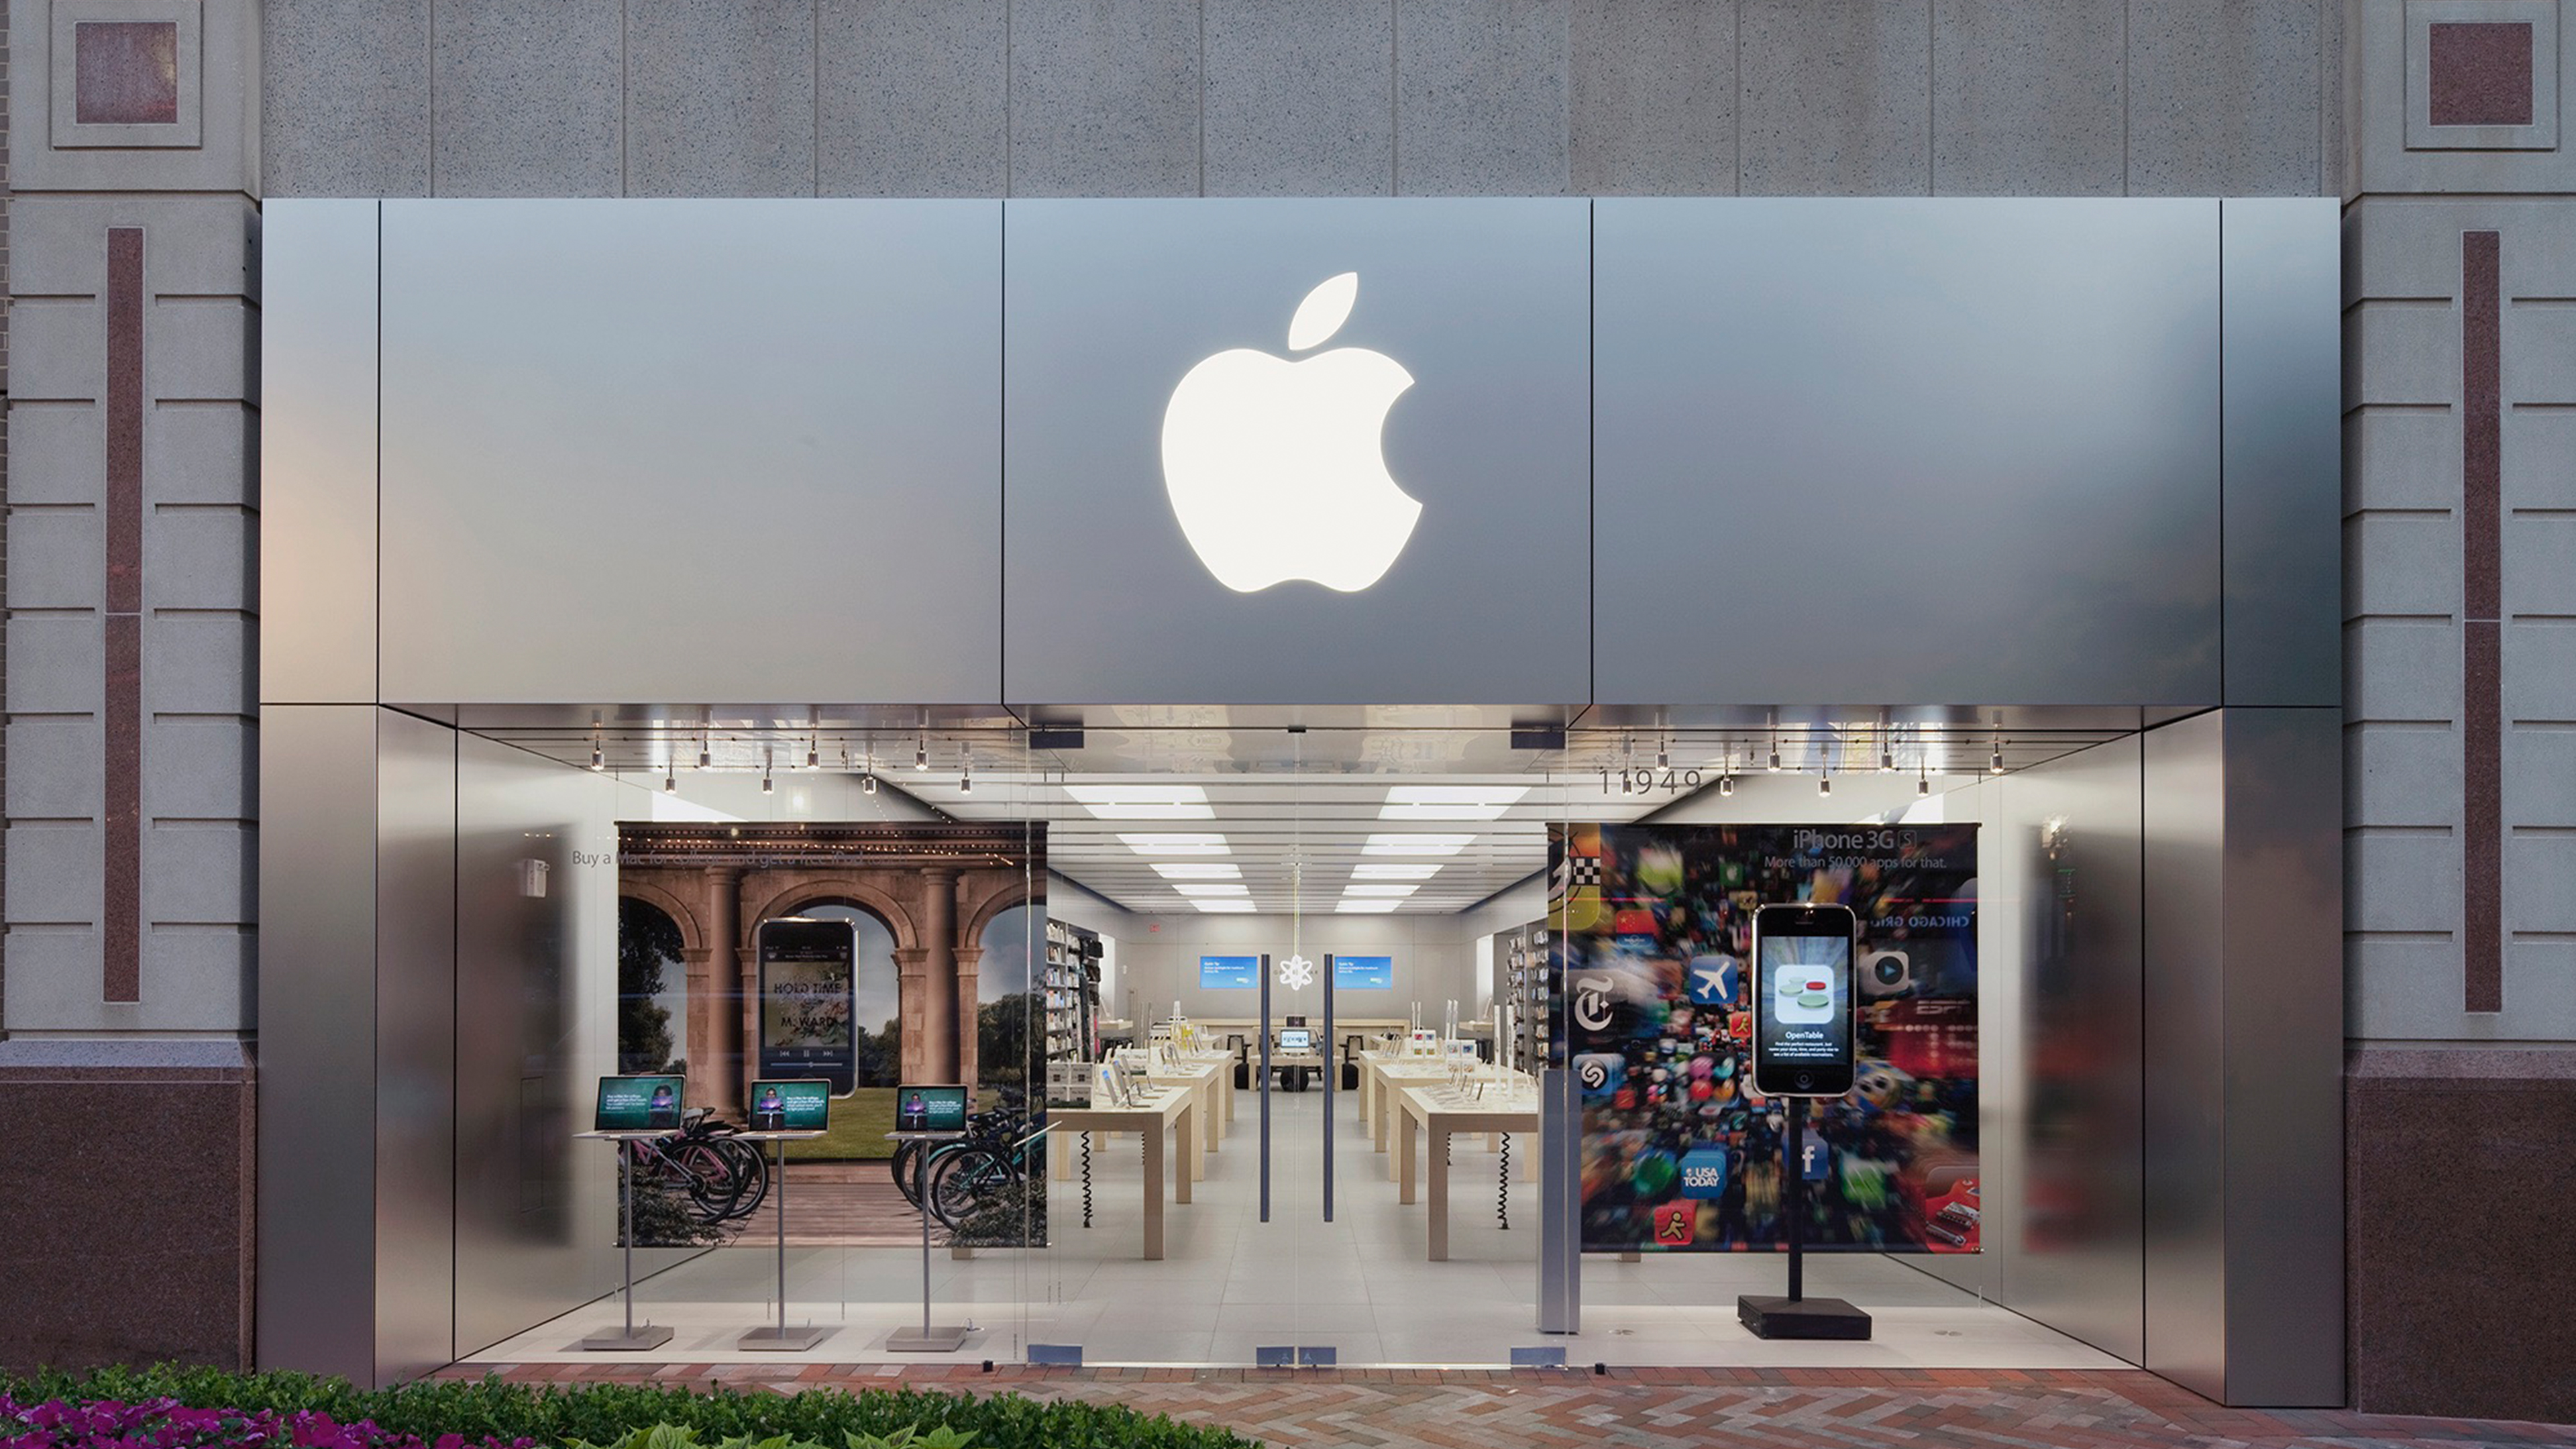 Major expansion possible for Reston, Virginia Apple Store